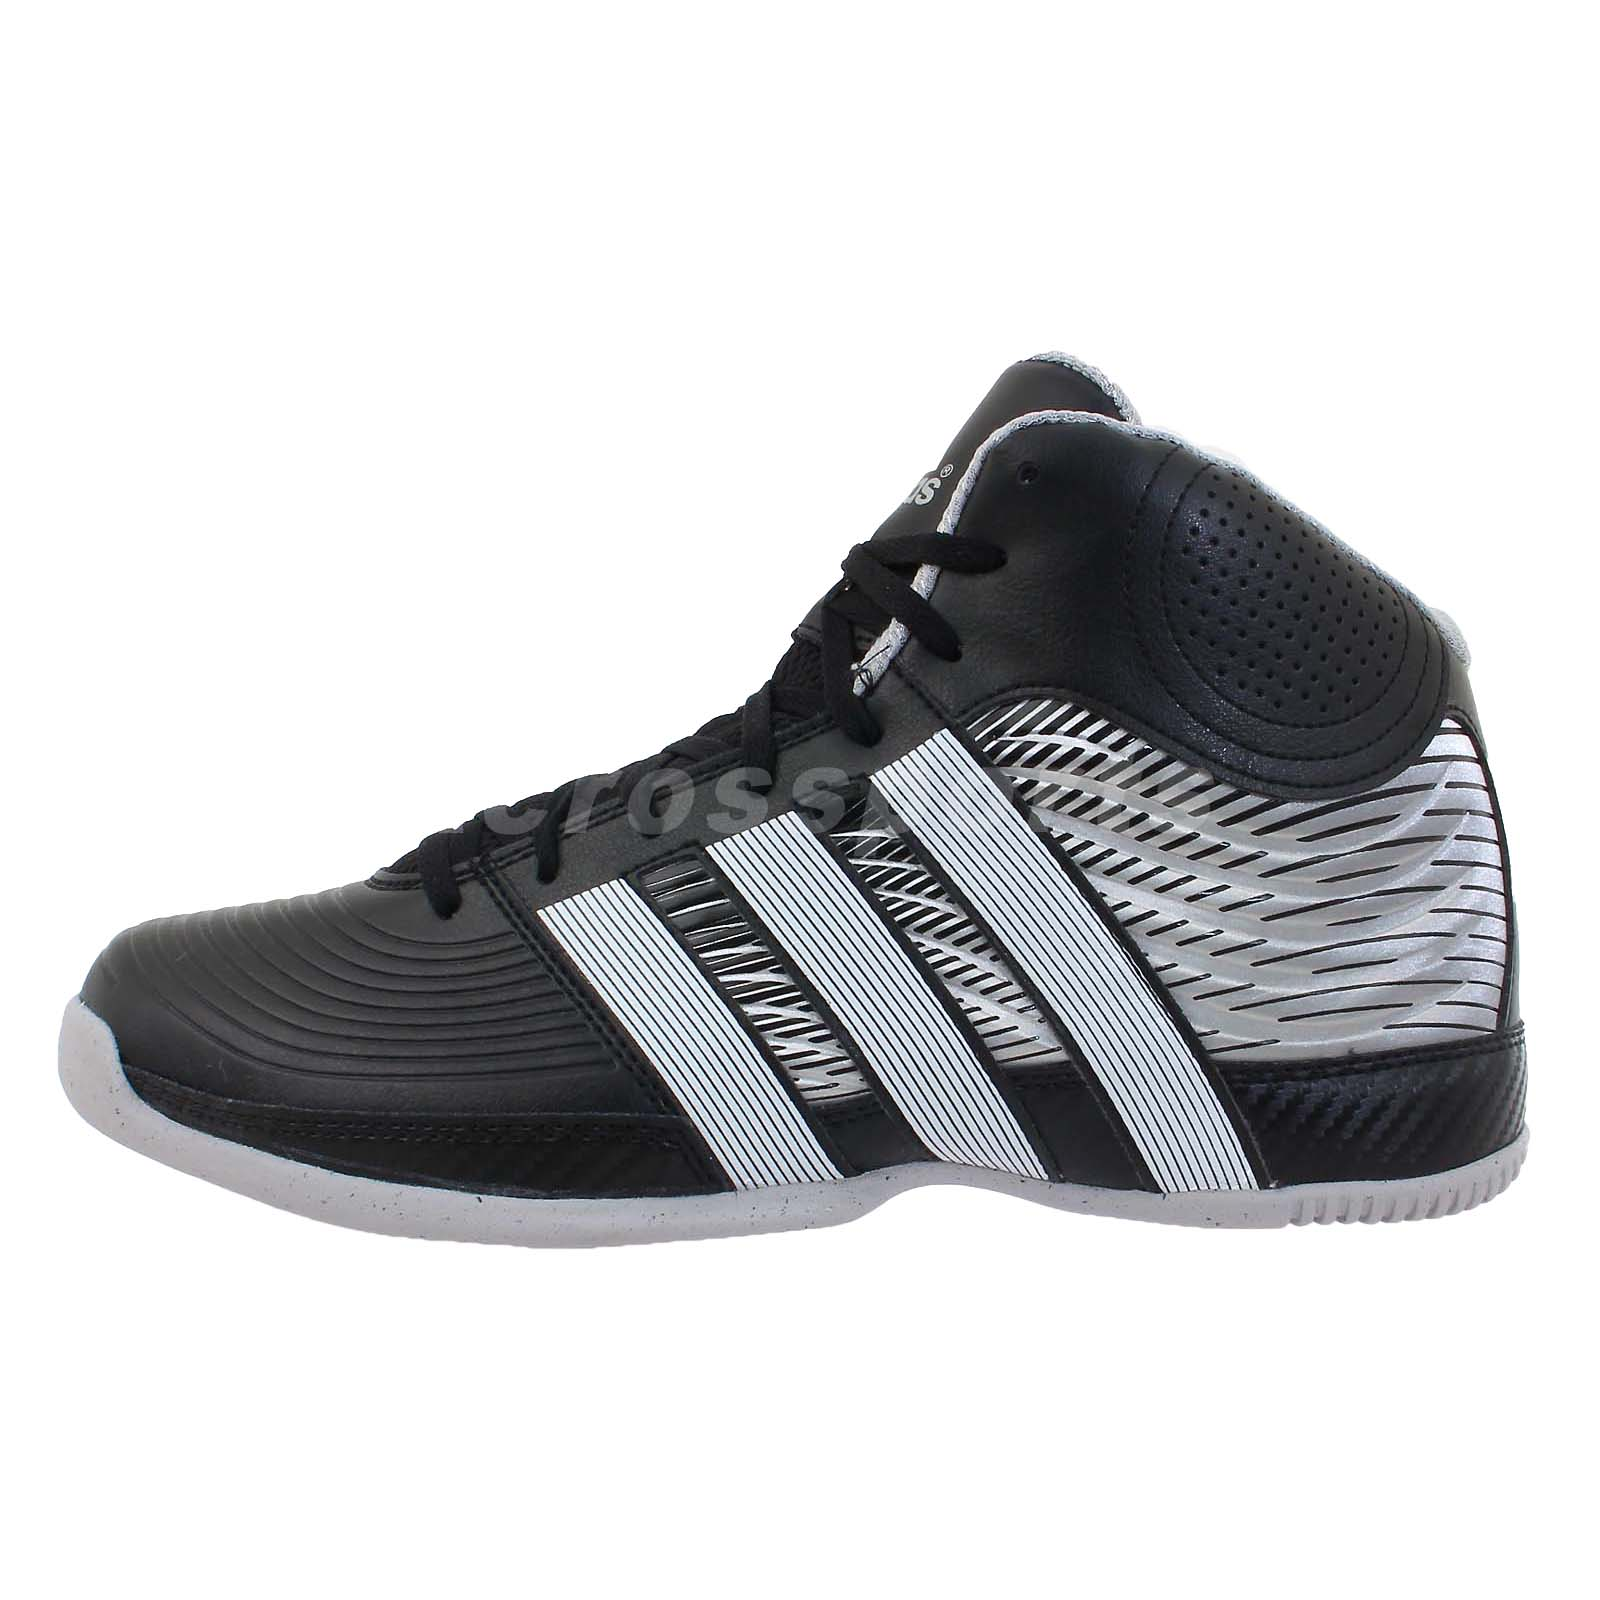 Shoes For Men 2013 Adidas Adidas Commande...